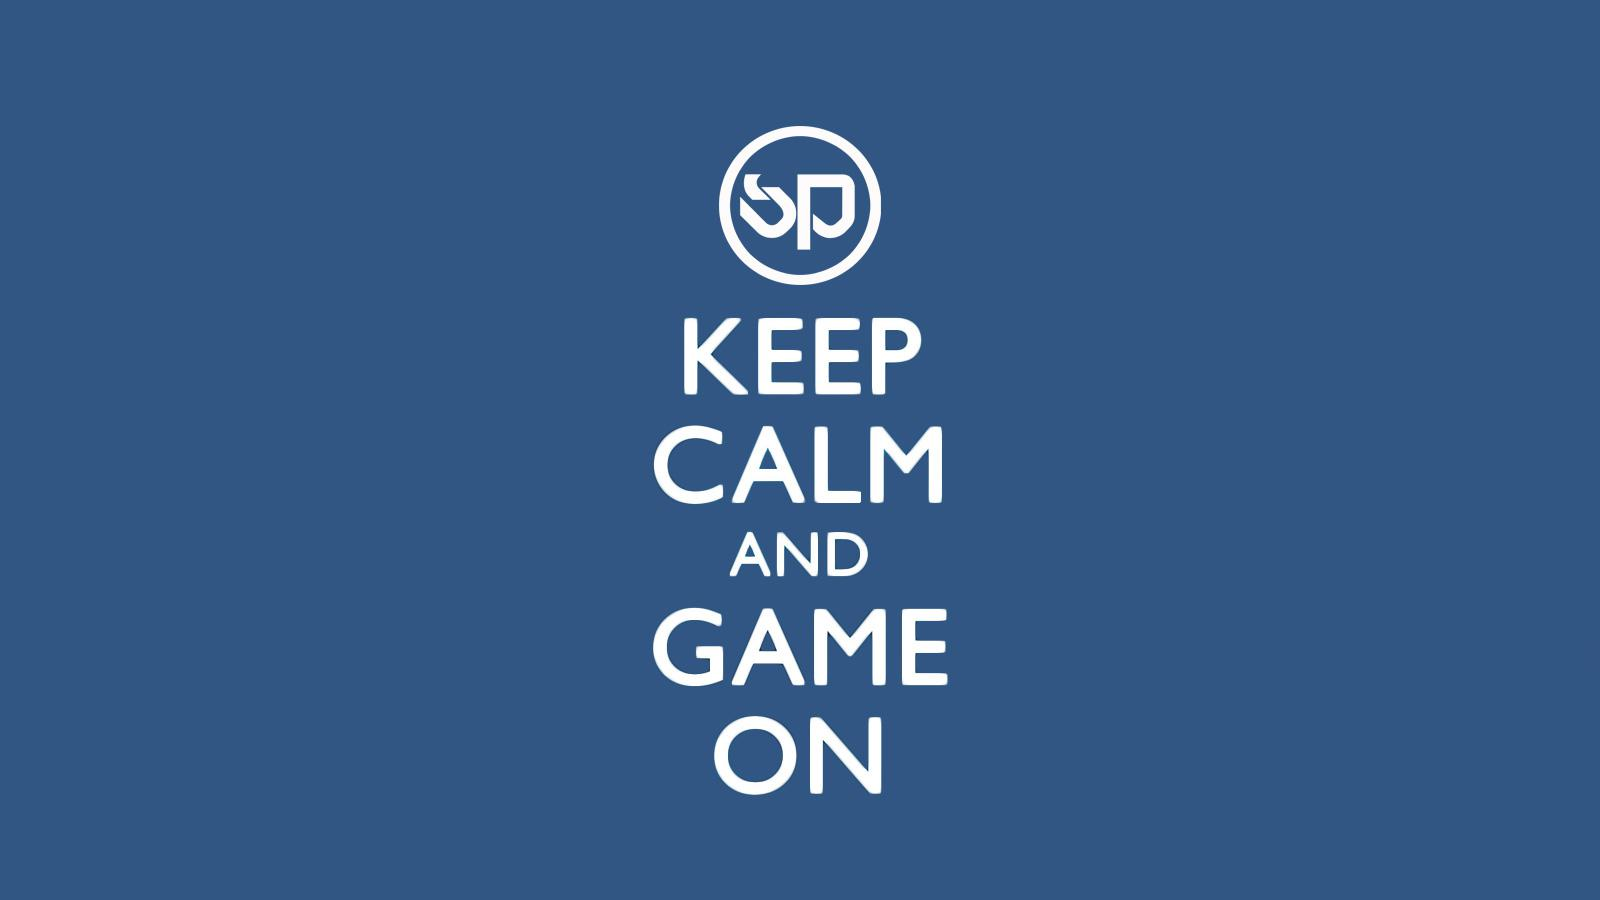 SP Gaming Keep Calm Wallpaper